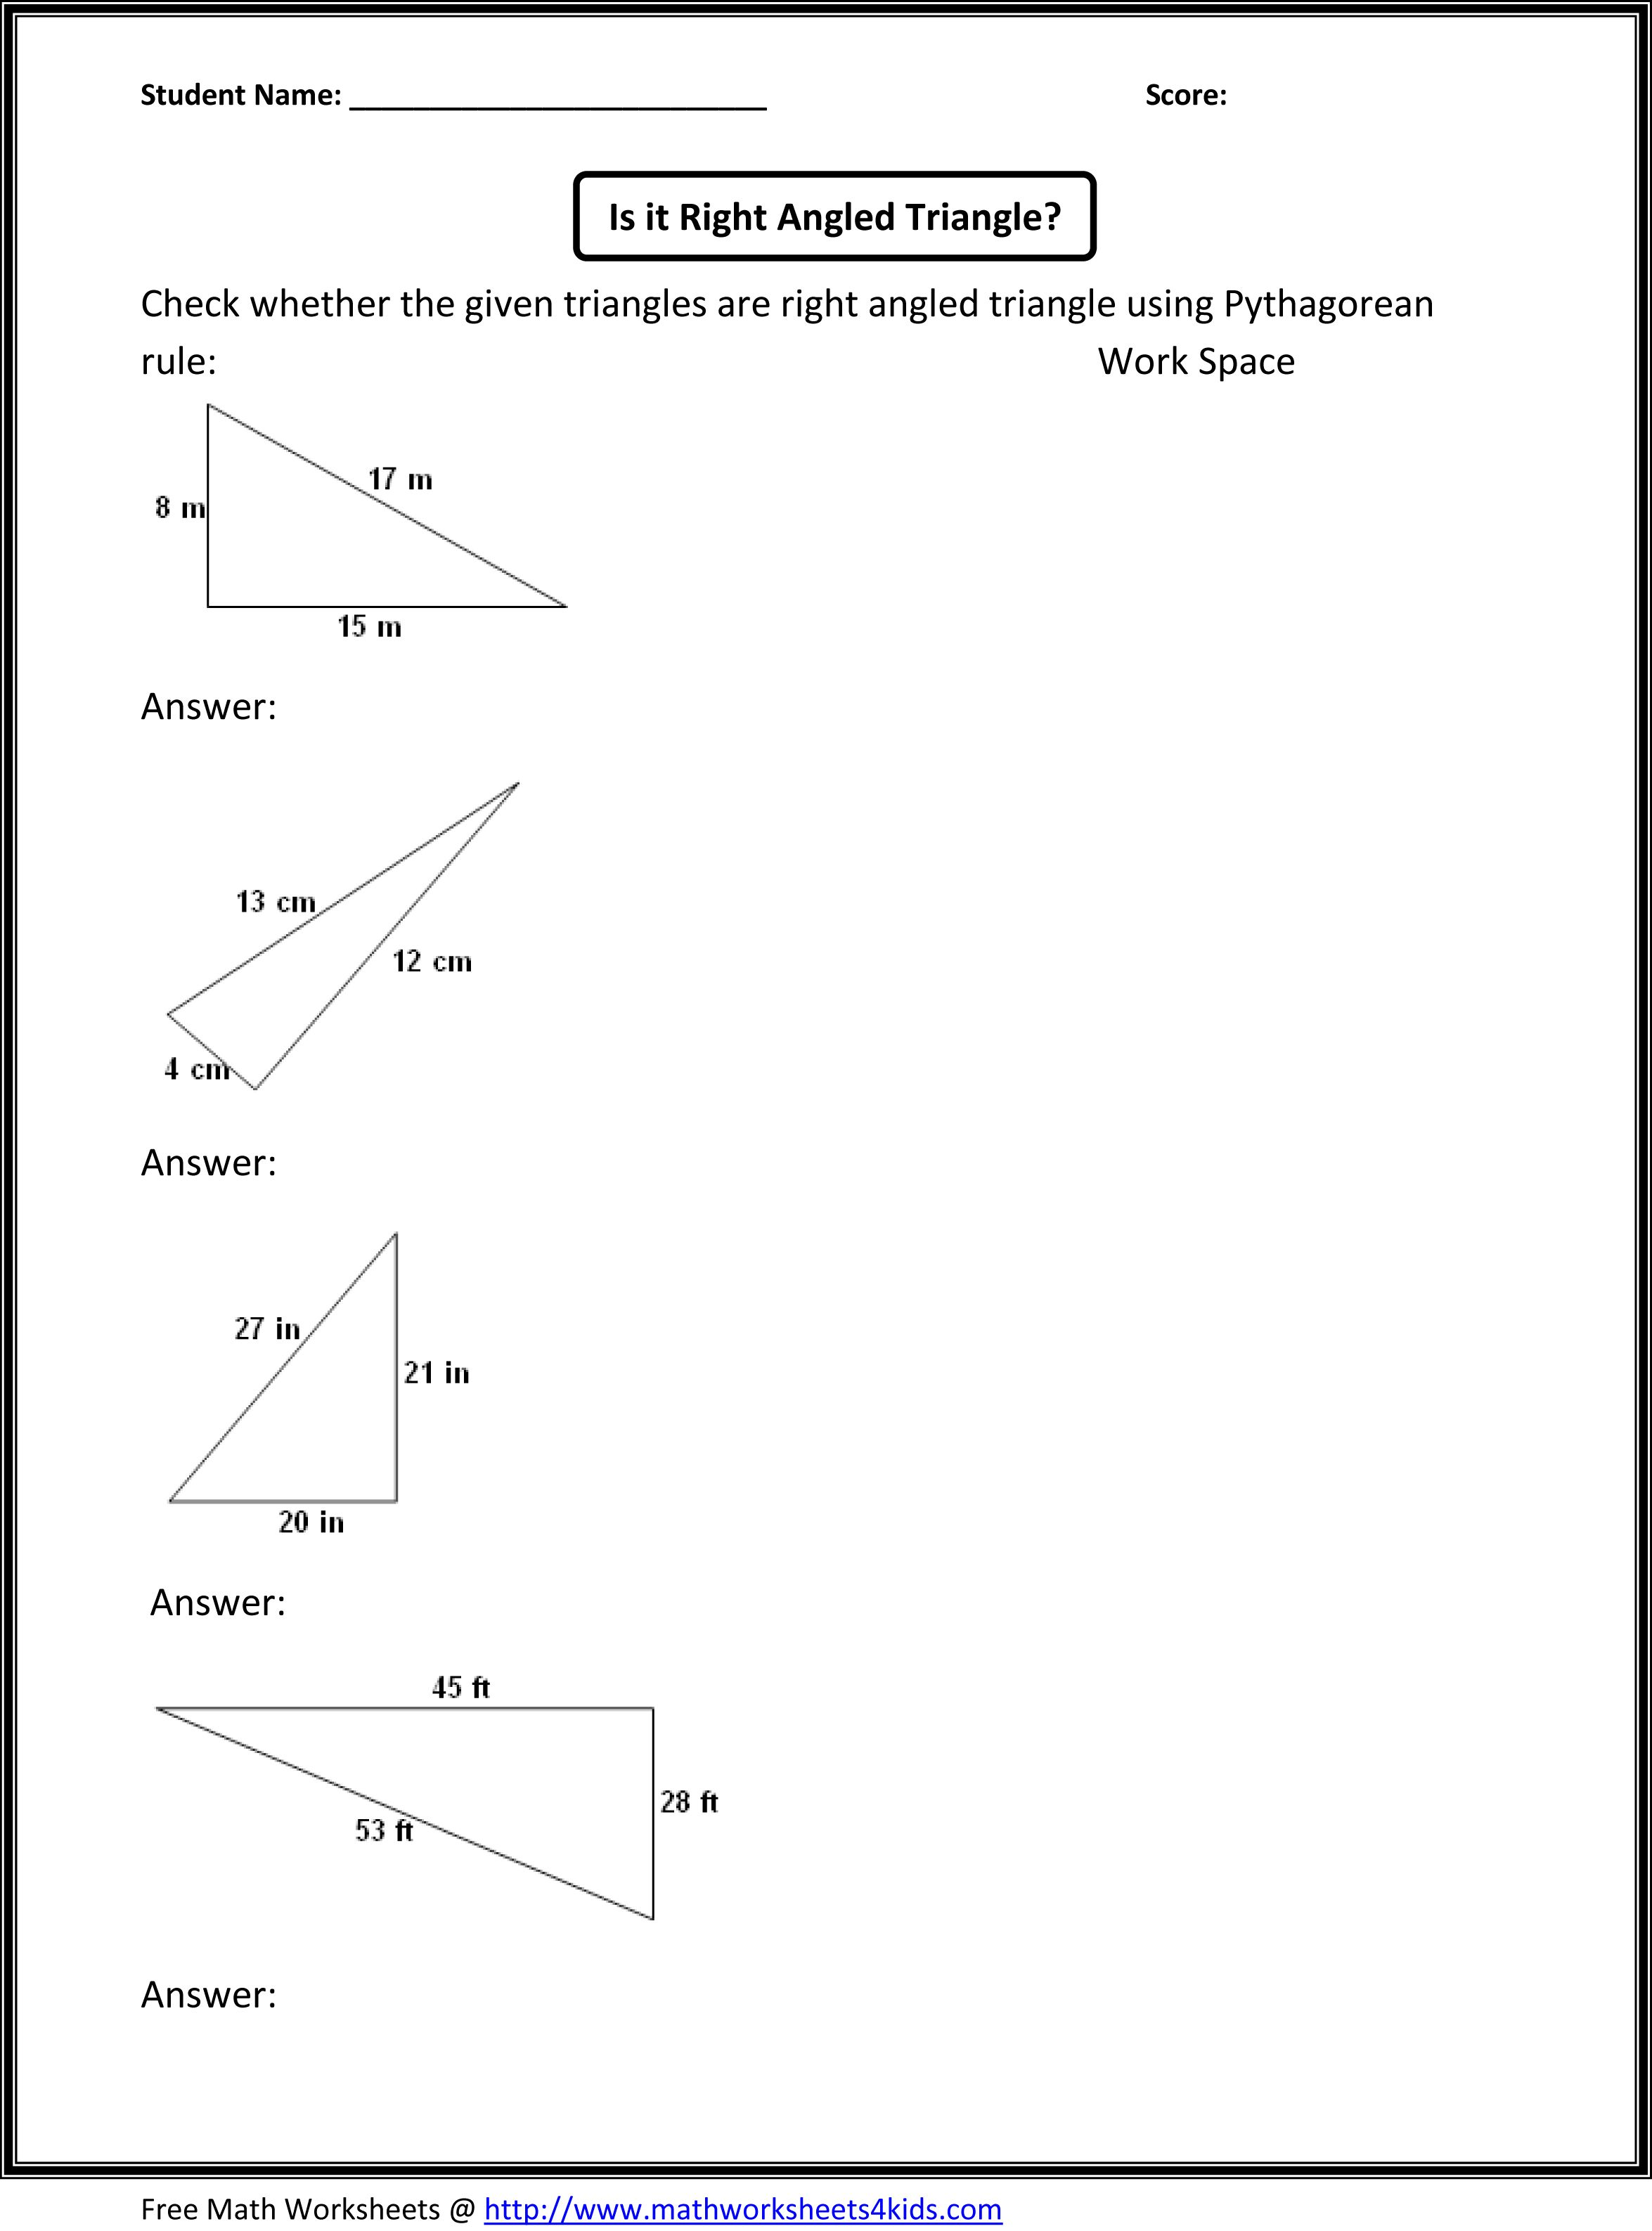 Worksheet 8th Grade Math Worksheets Algebra free math help for 8th graders delwfg com 1000 images about worksheets on pinterest place value